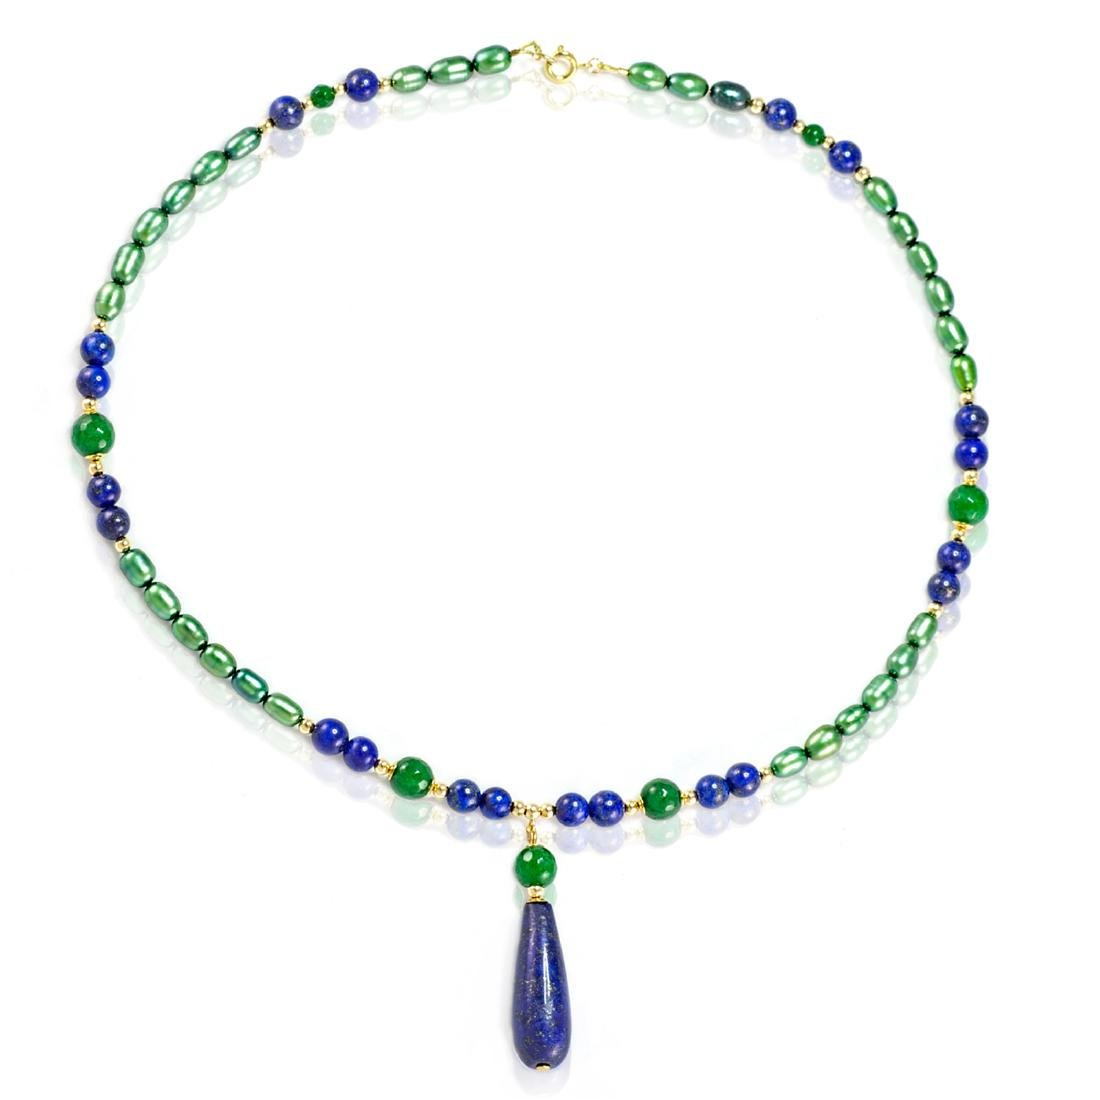 14K Gold Imperal Jade and Lapis Lazuli Necklace